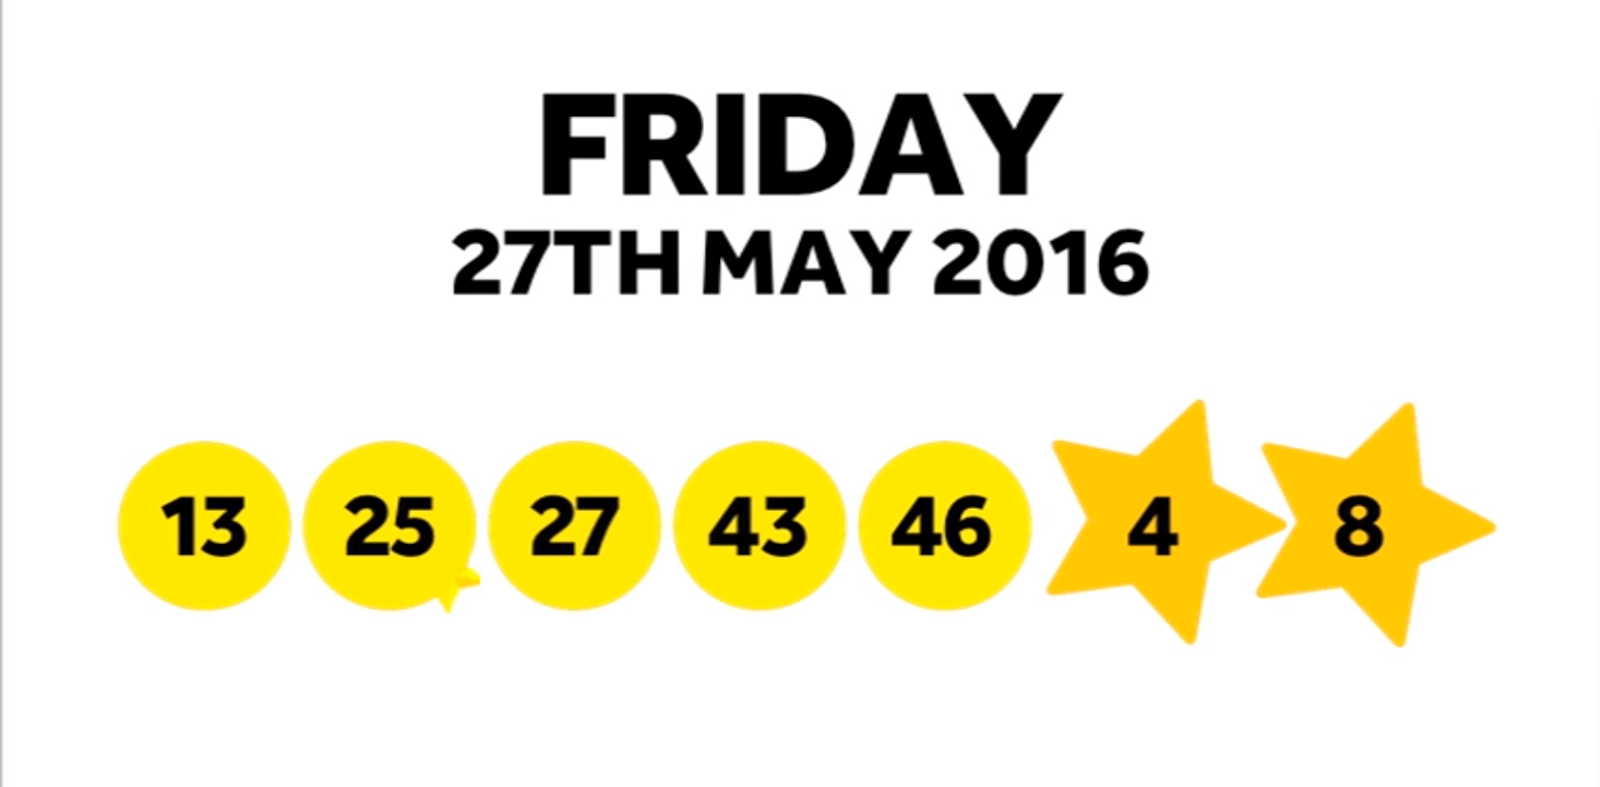 The National Lottery Friday 'EuroMillions' draw results from 27th May 2016